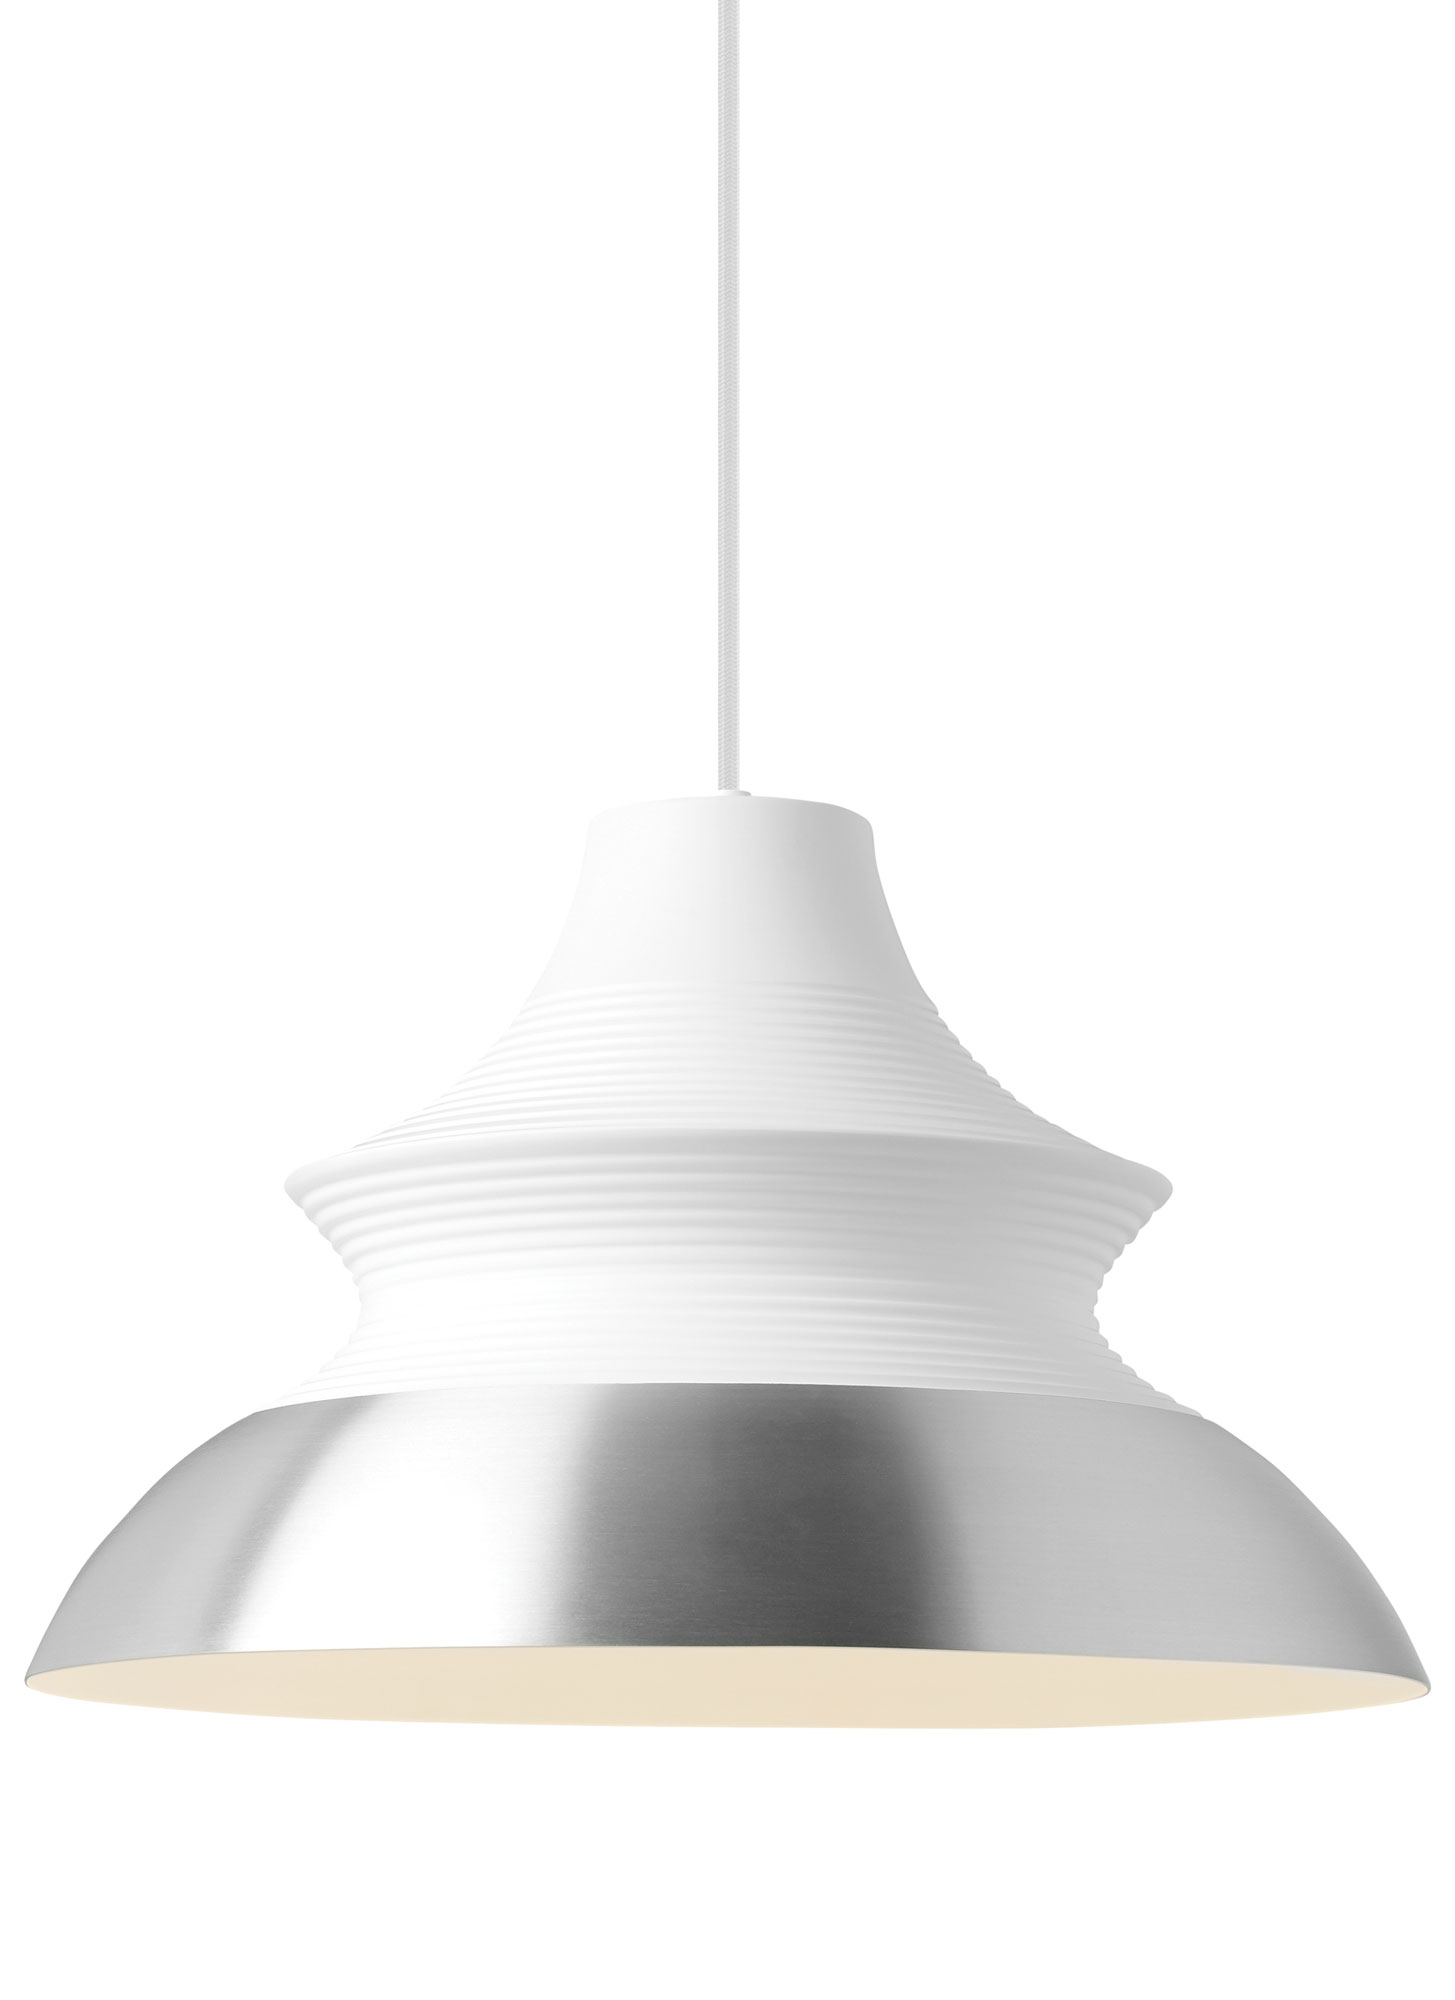 Togan grande pendant by lbl lighting lp892whalled827 download image togan grande pendant by lbl lighting lp892whalled827 aloadofball